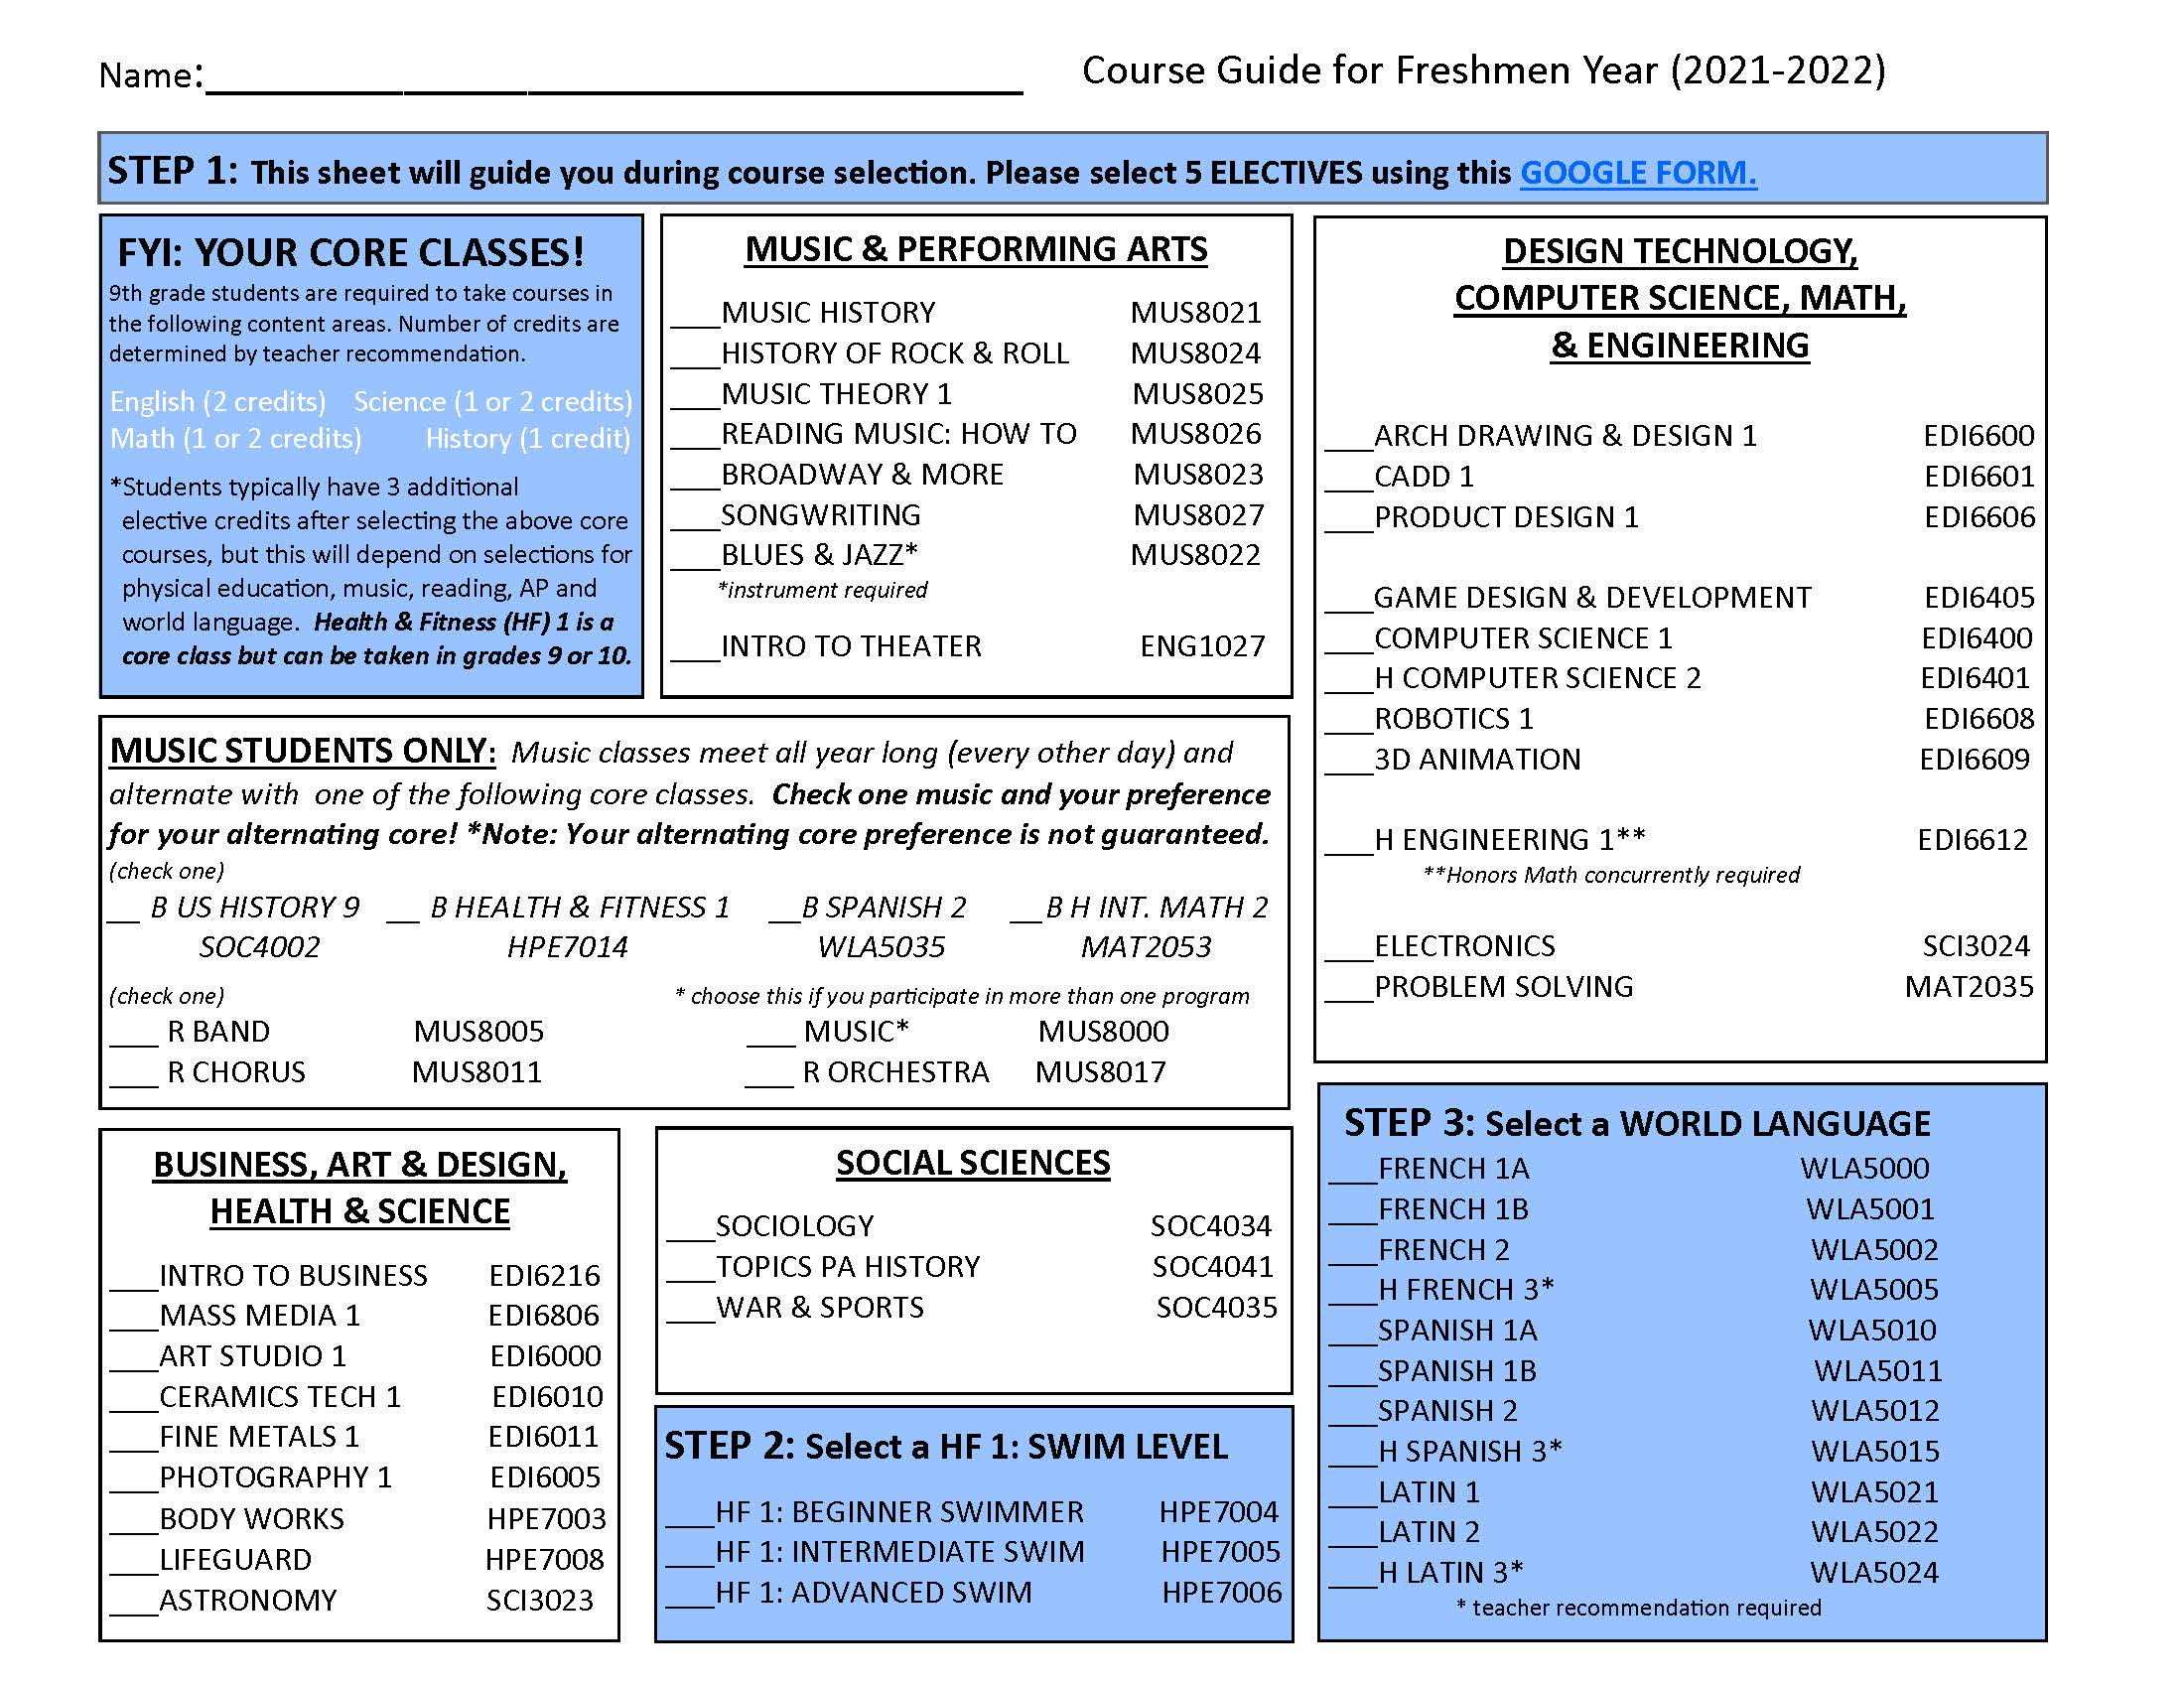 Freshman Quick Course Guide. The graphic contains all the of the information presented above.